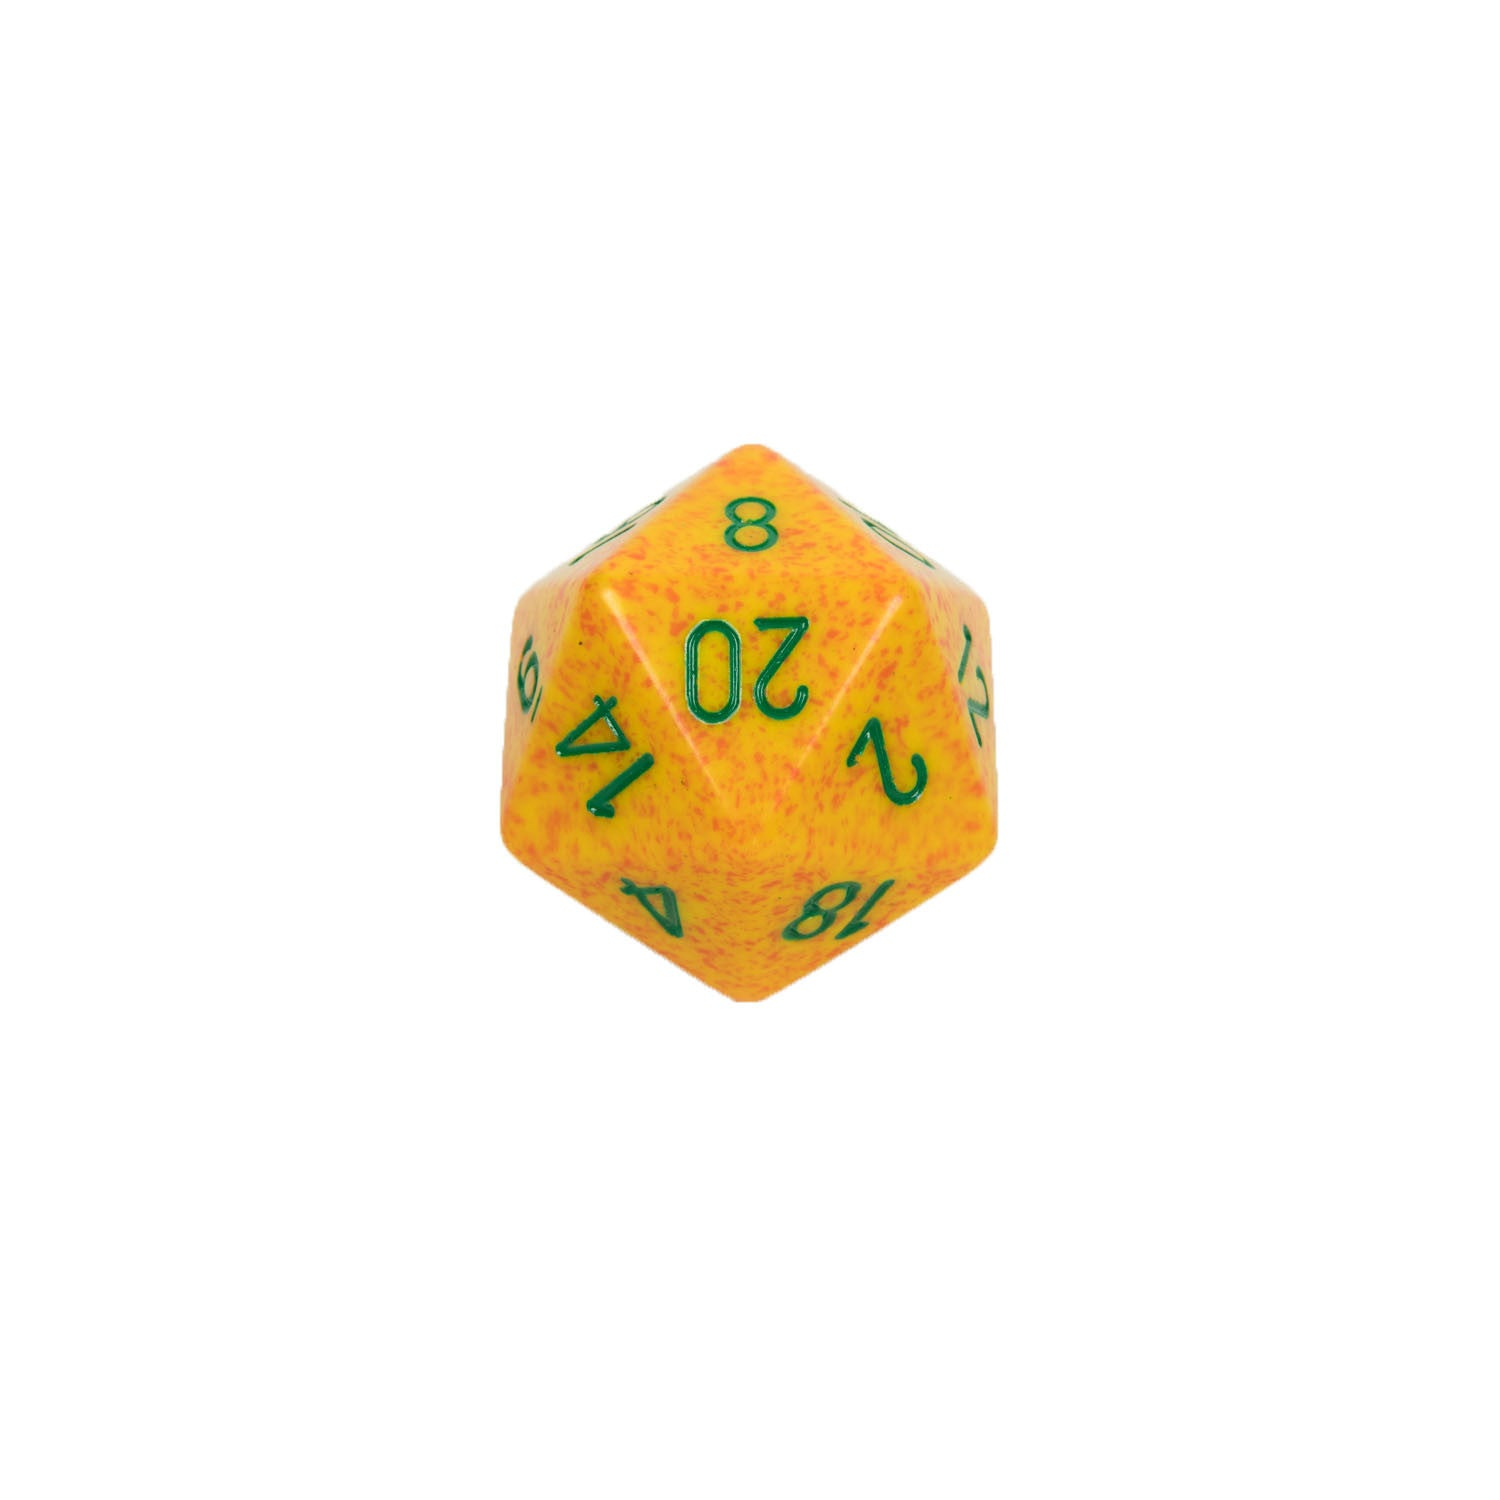 Chessex CHXXS2016 Lotus™ Speckled 34mm d20 single